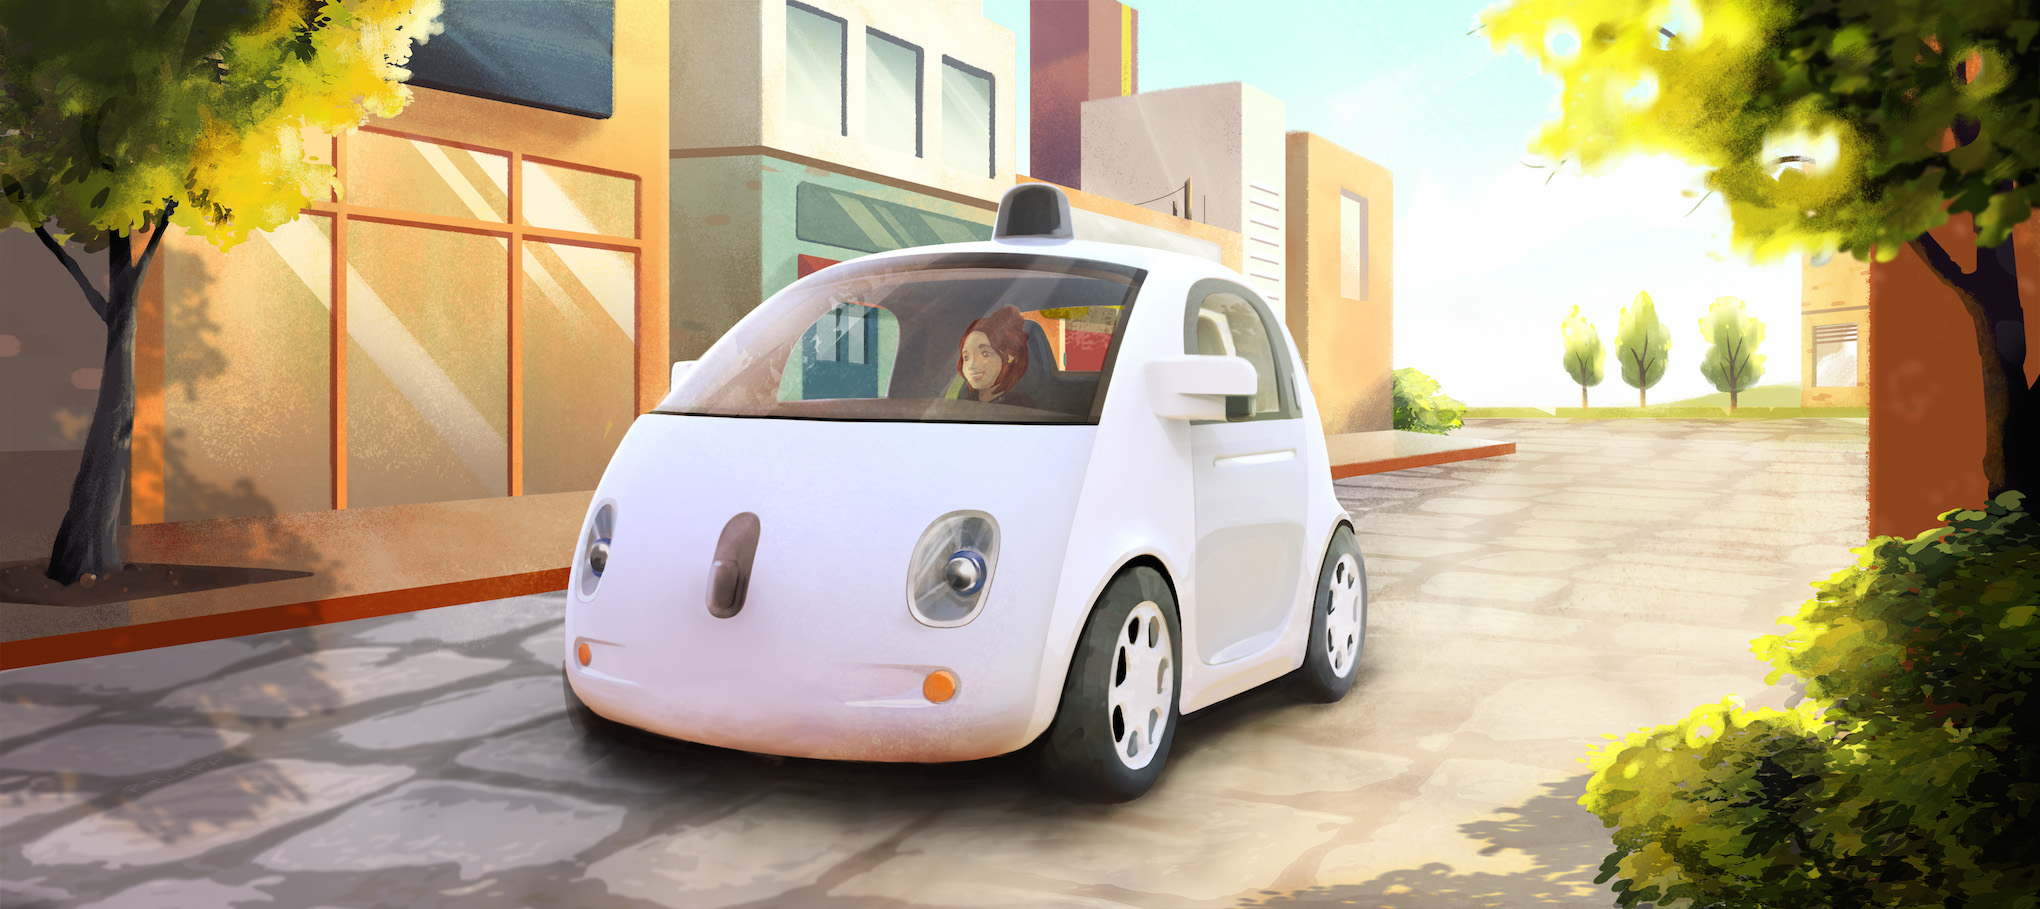 Google_self-driving_prototype_illustration